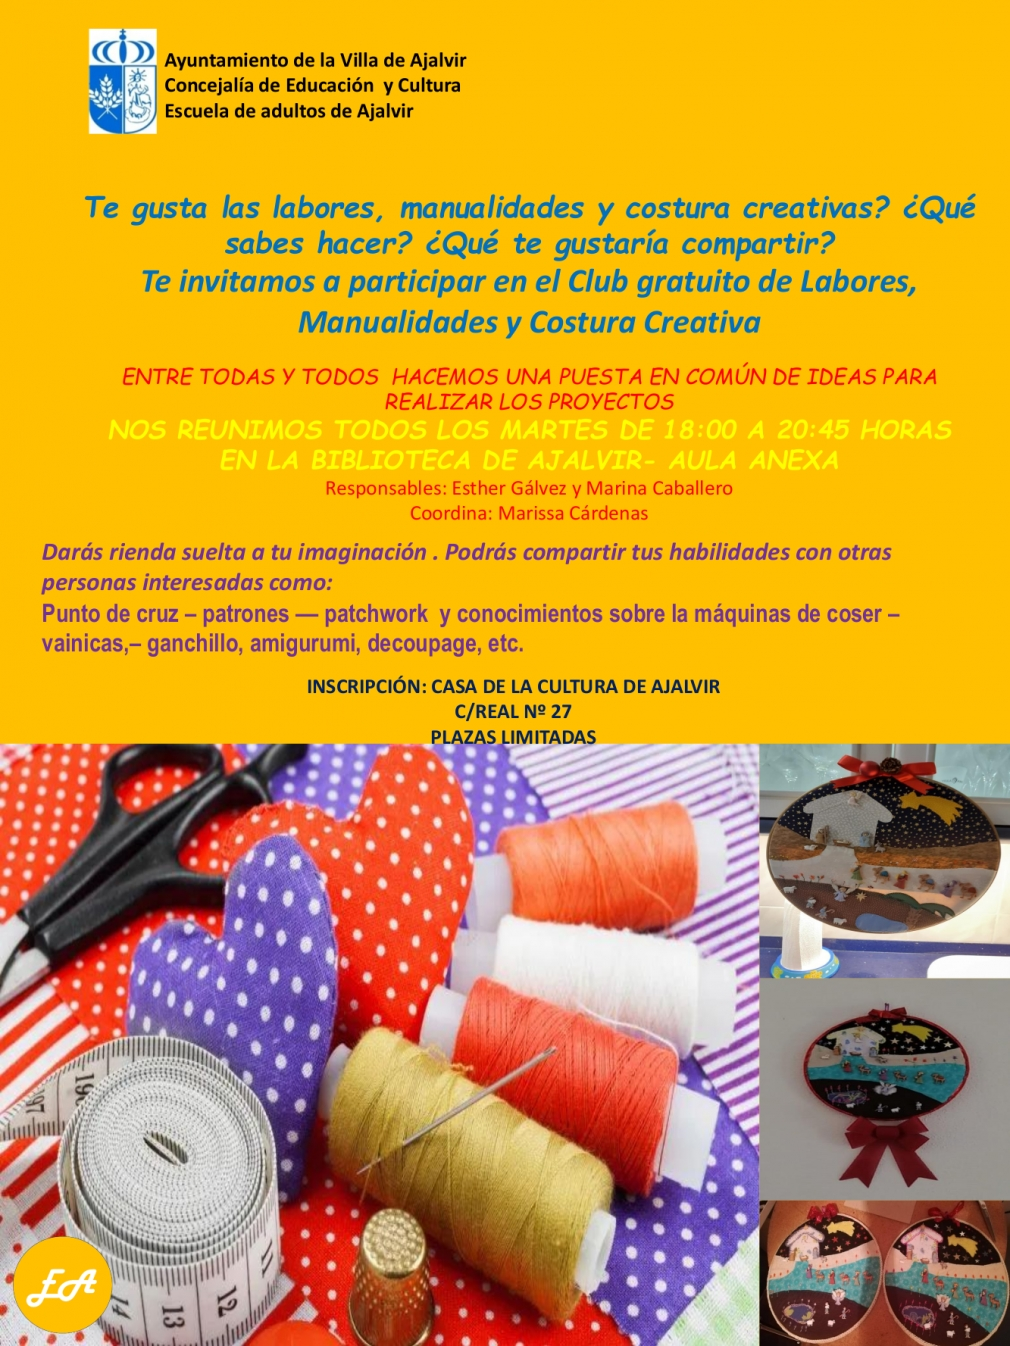 CLUB MANUALIDADES, COSTURA Y LABORES CREATIVAS